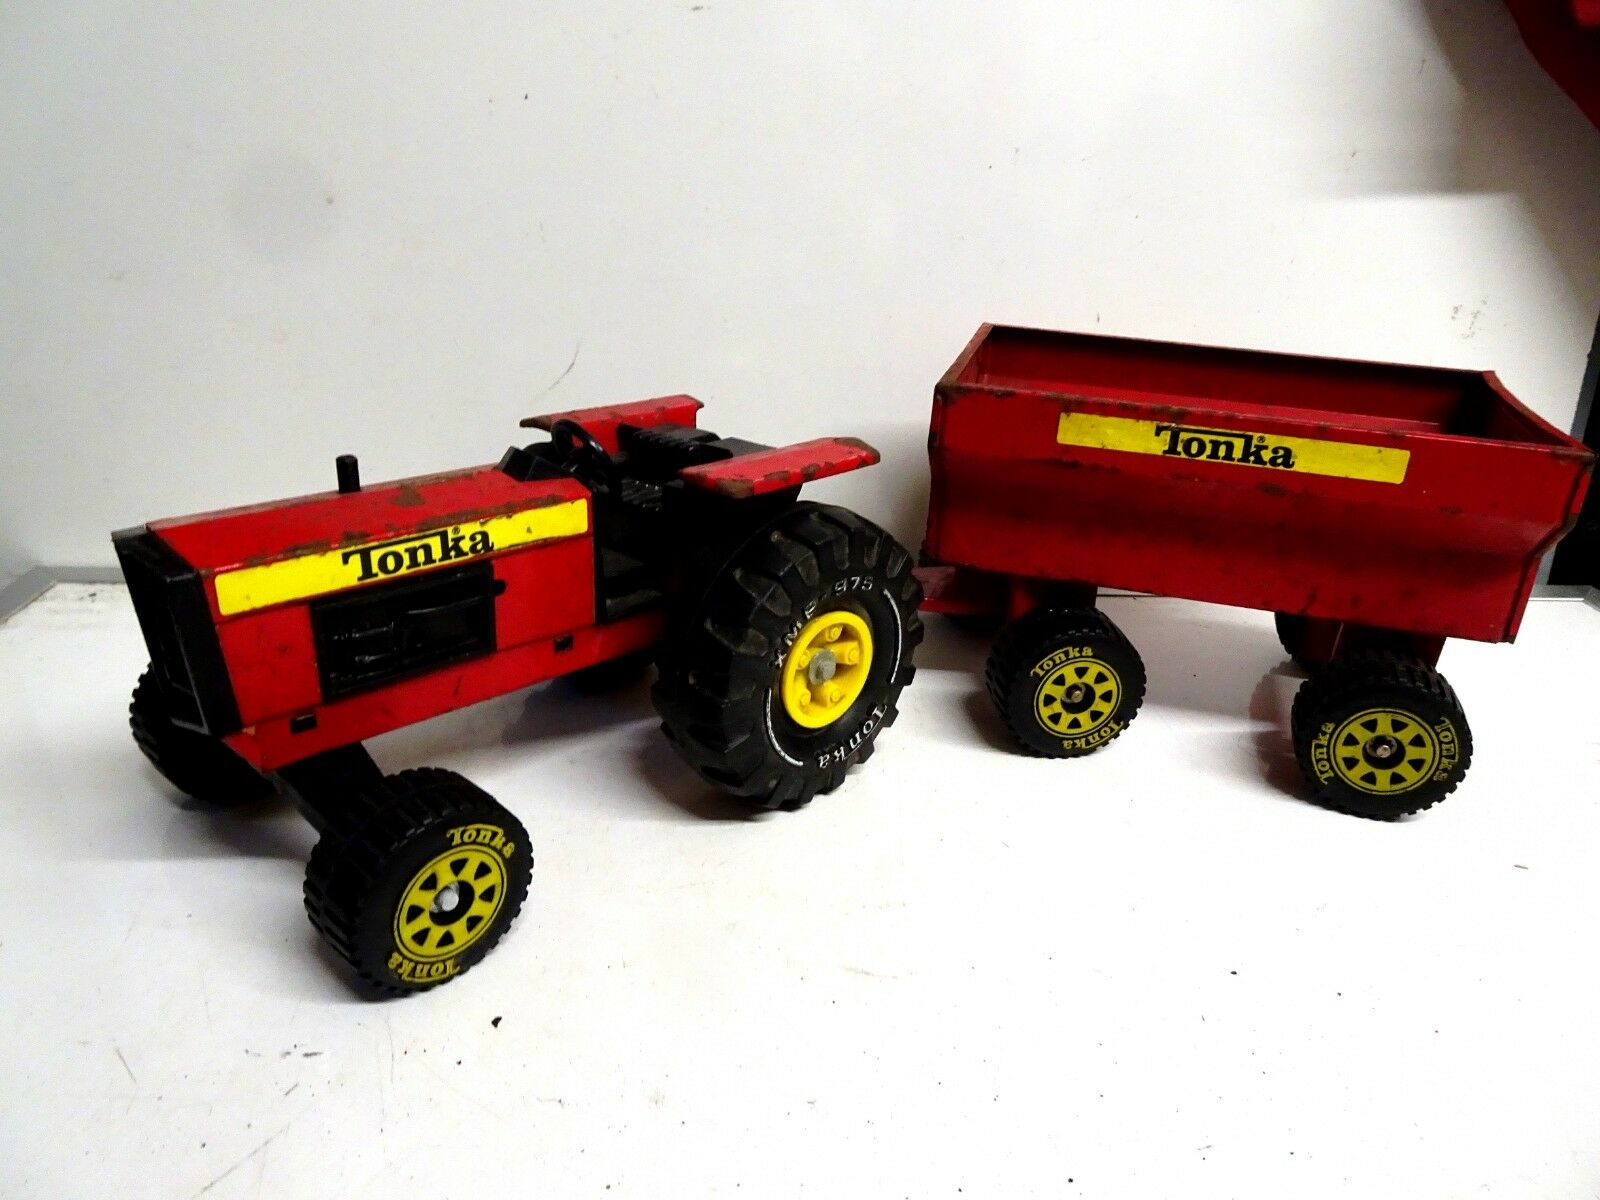 Vintage Tractor & Trailer Tonka Toy 1970's rot Pressed Steel Xmb-975